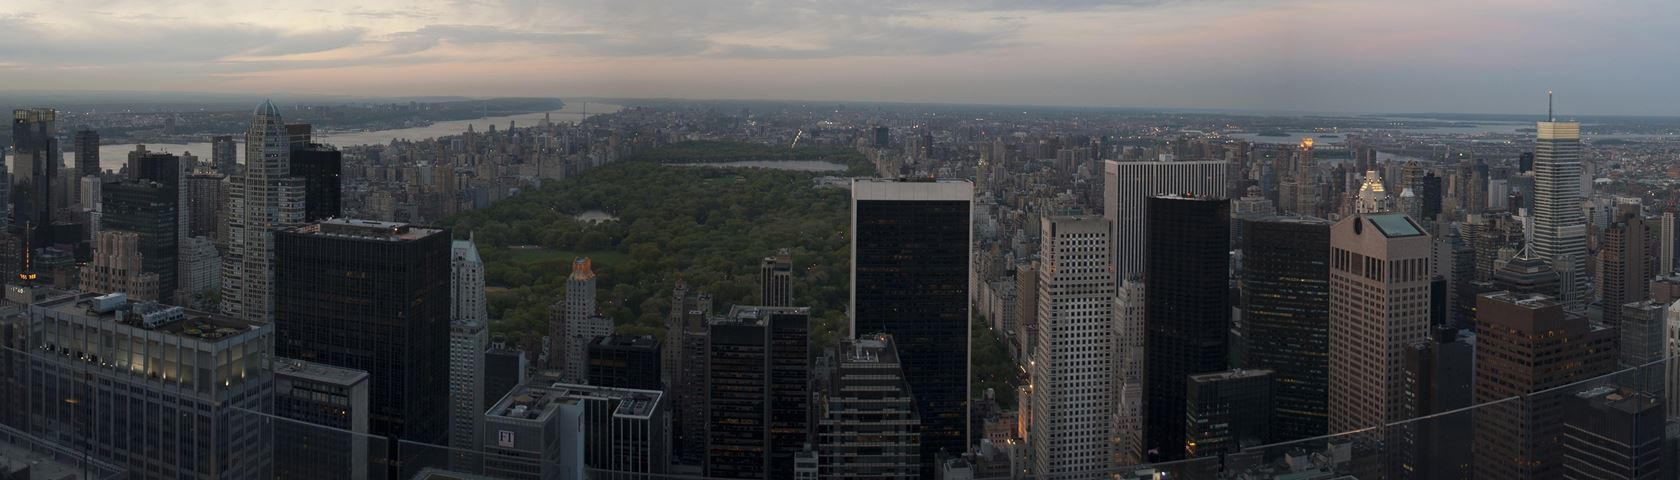 Central Park from the Skyscrapers